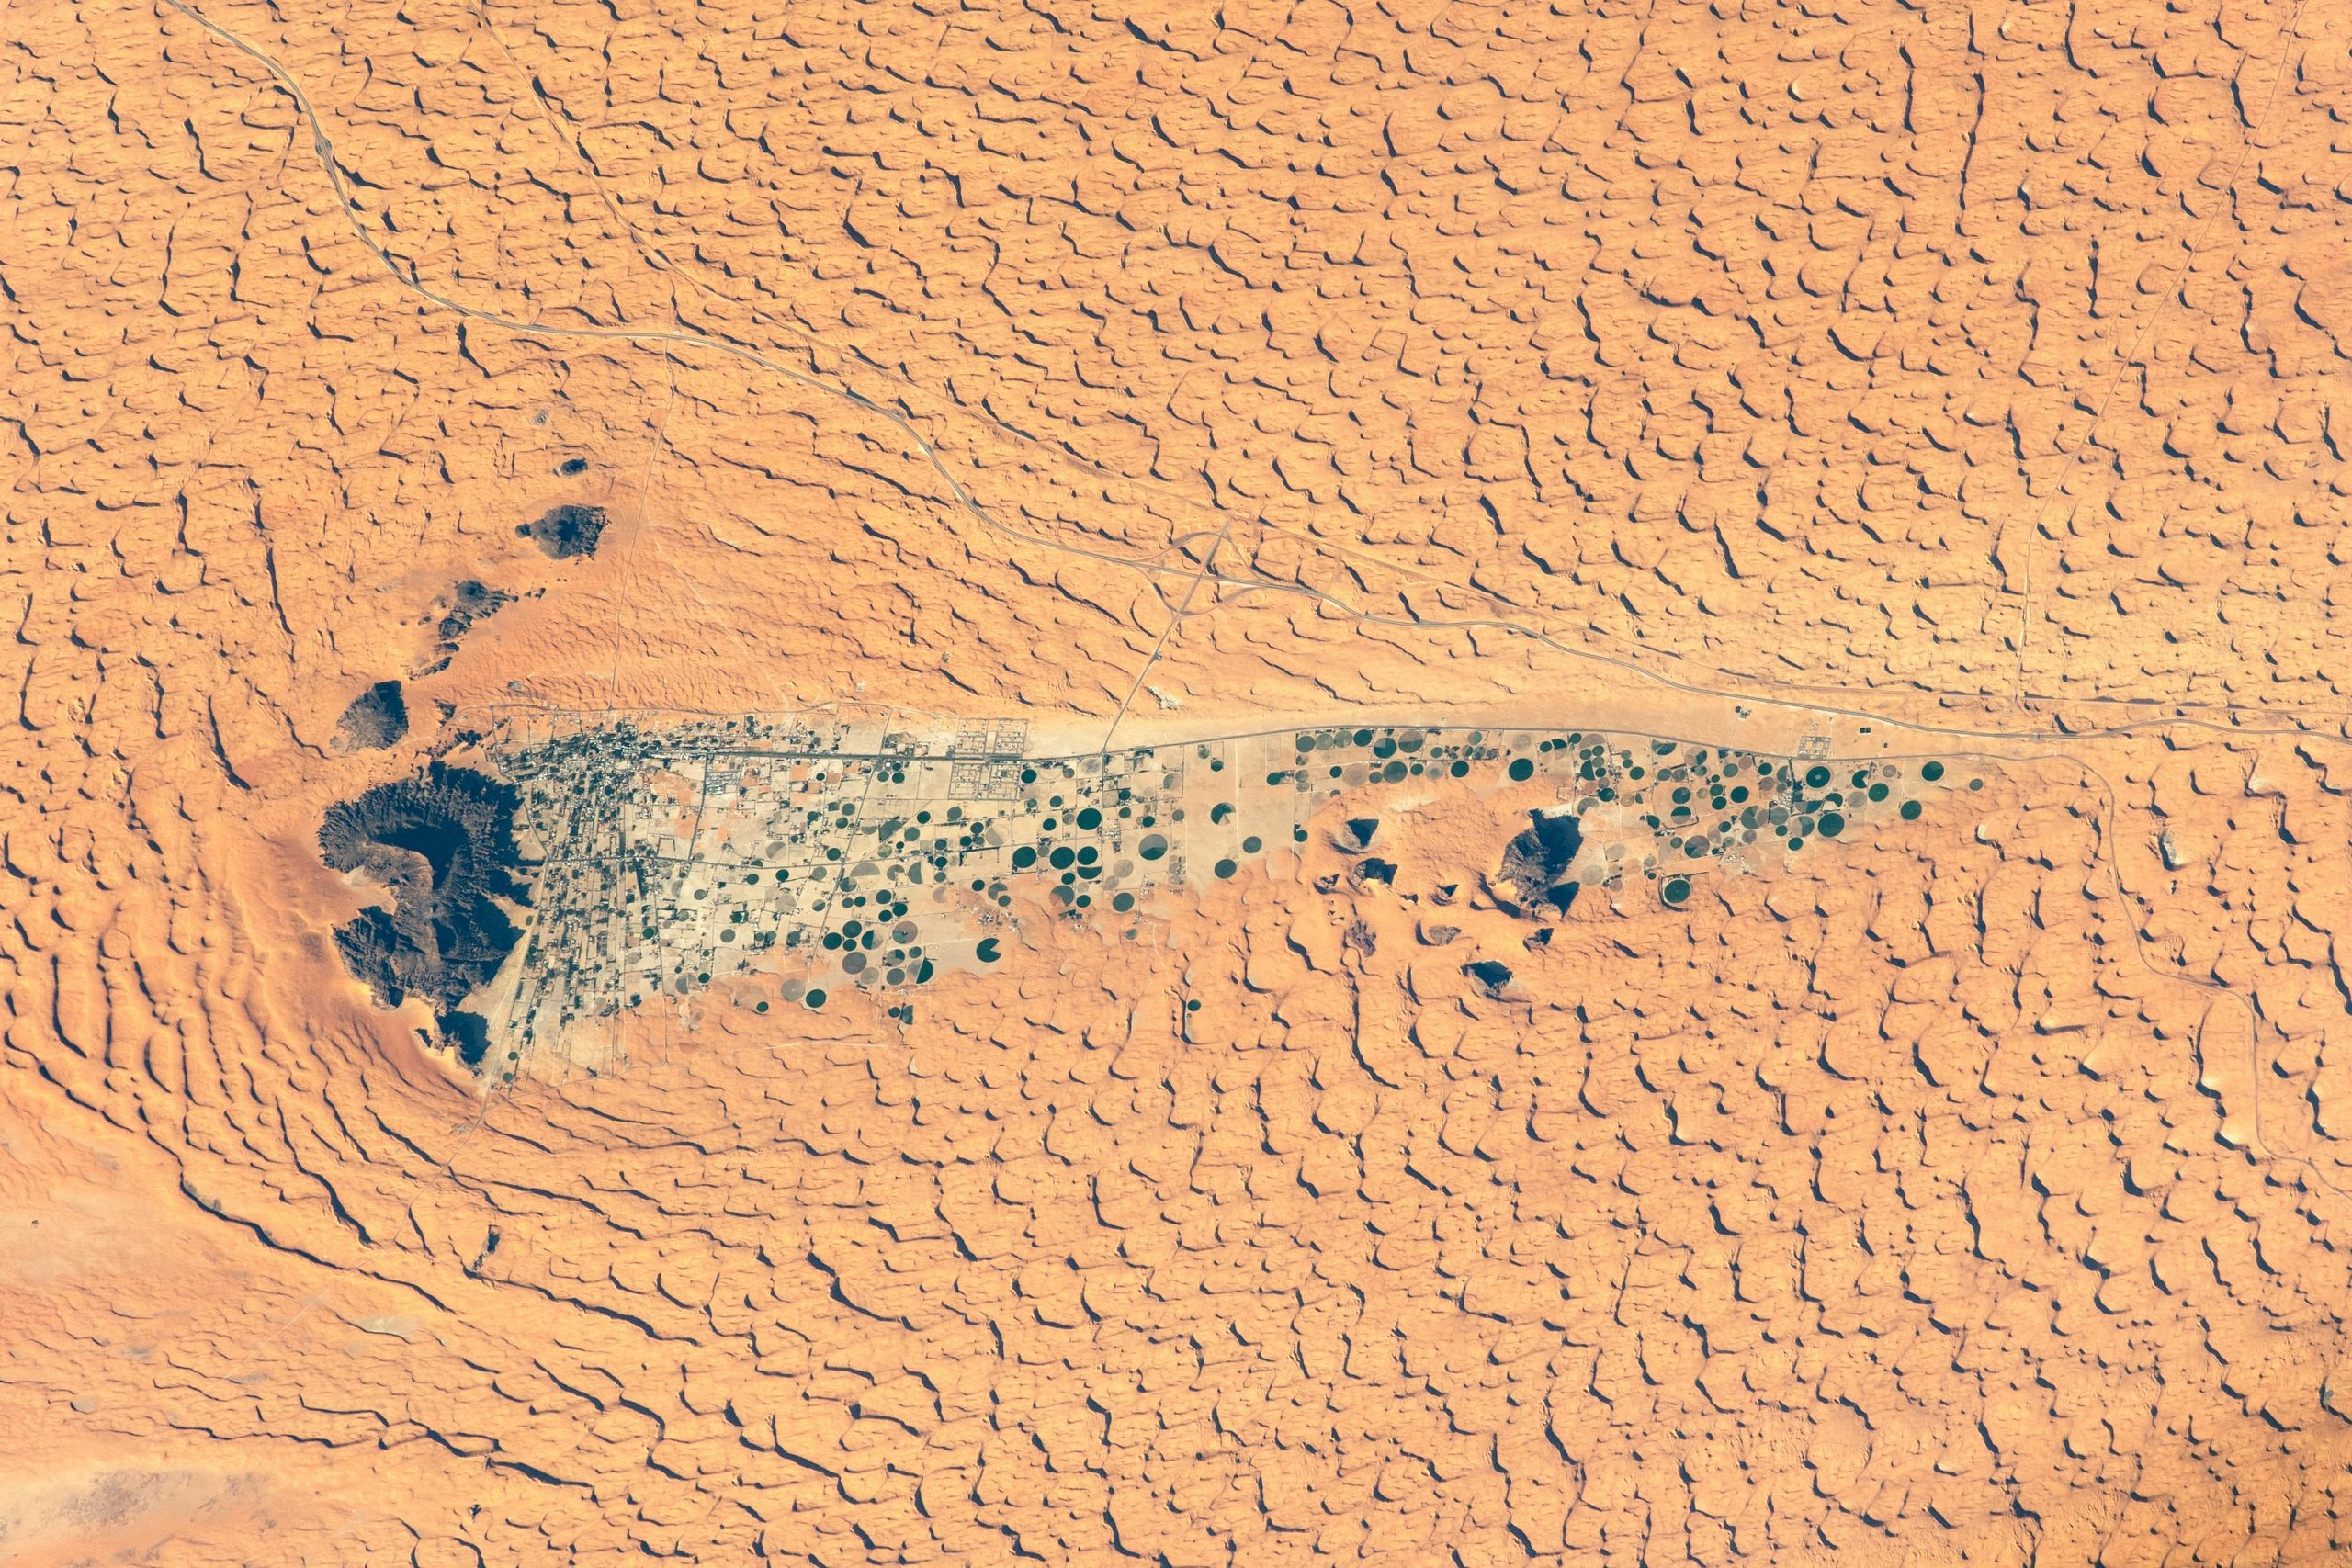 Modern Oasis of Jubbah: A Long-Ago Lake Amid the Dunes - SciTechDaily